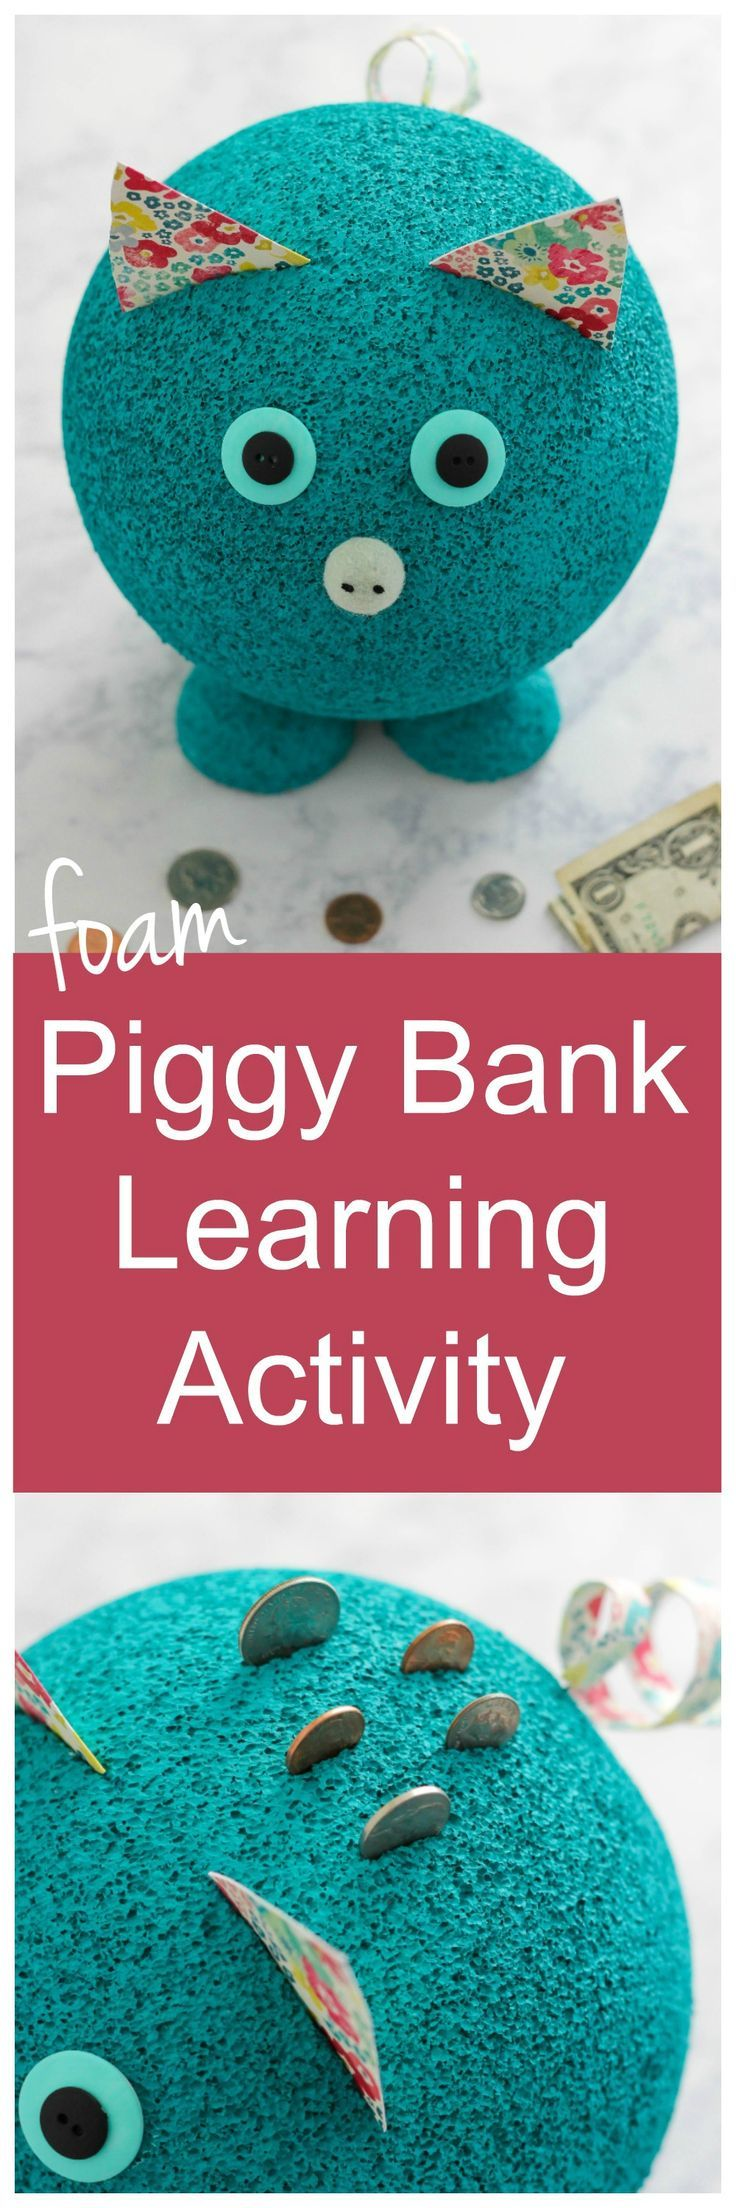 foam piggy bank learning activity